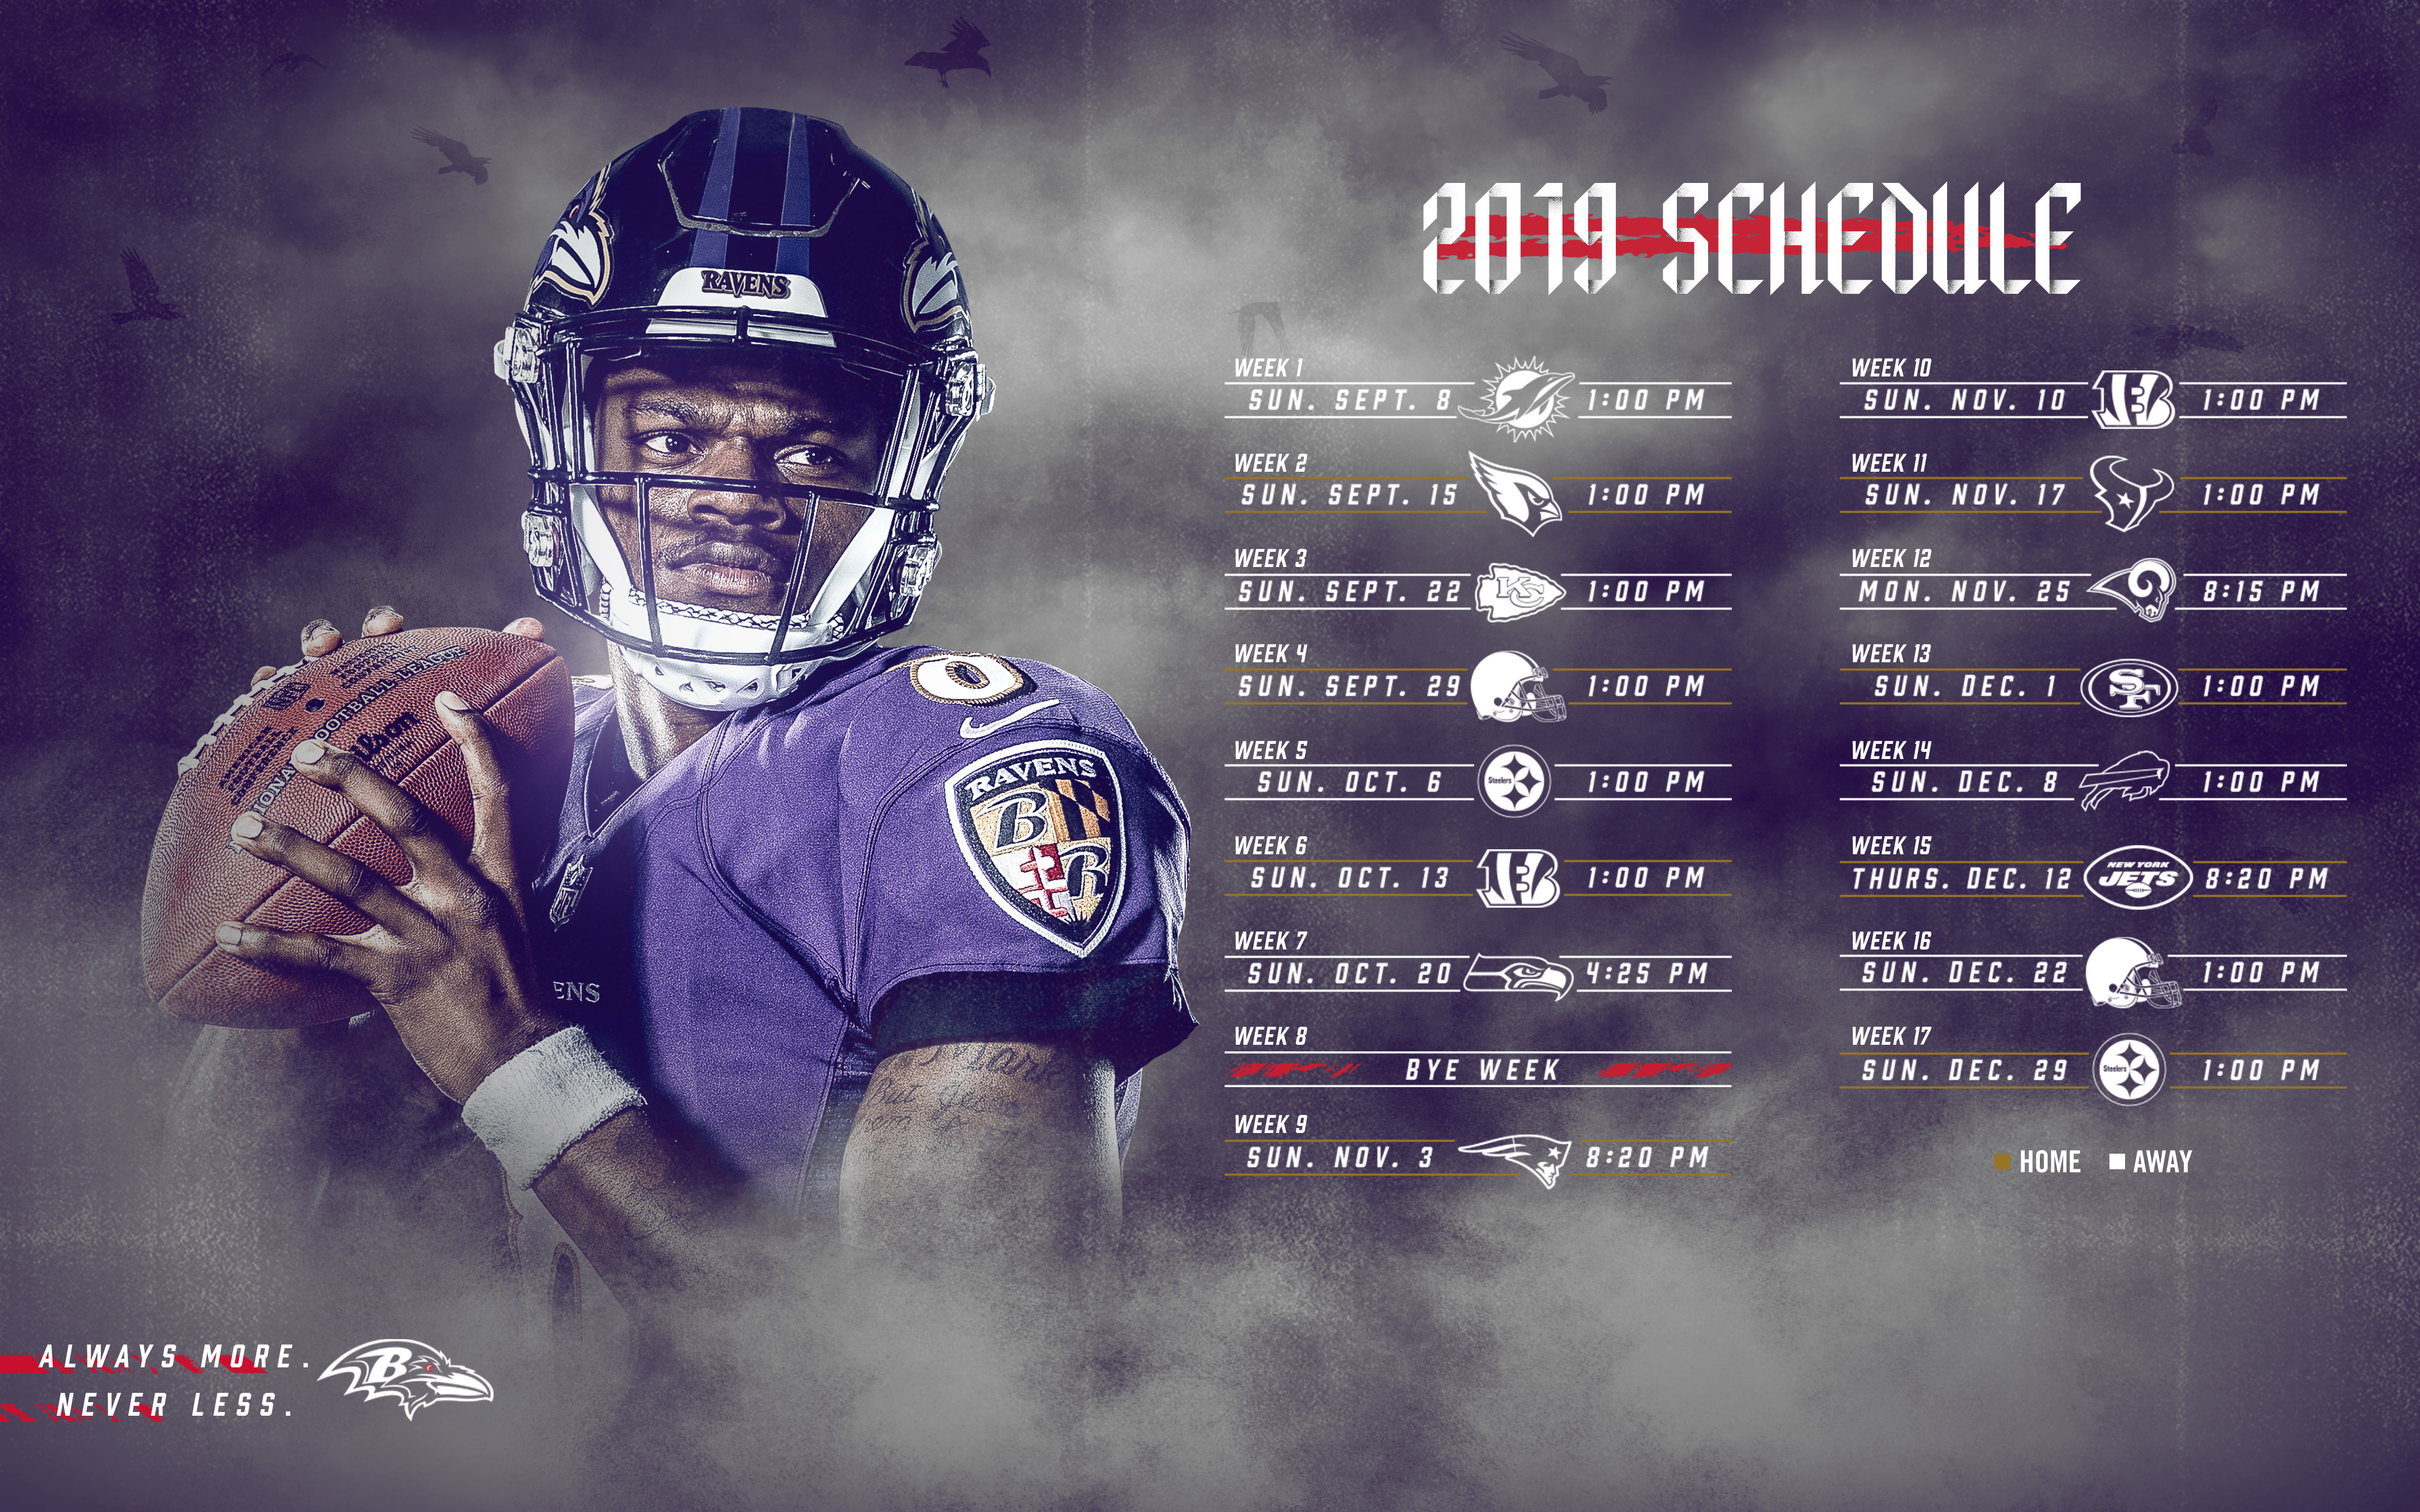 Ravens wallpapers - Baltimore ravens wallpapers android ...